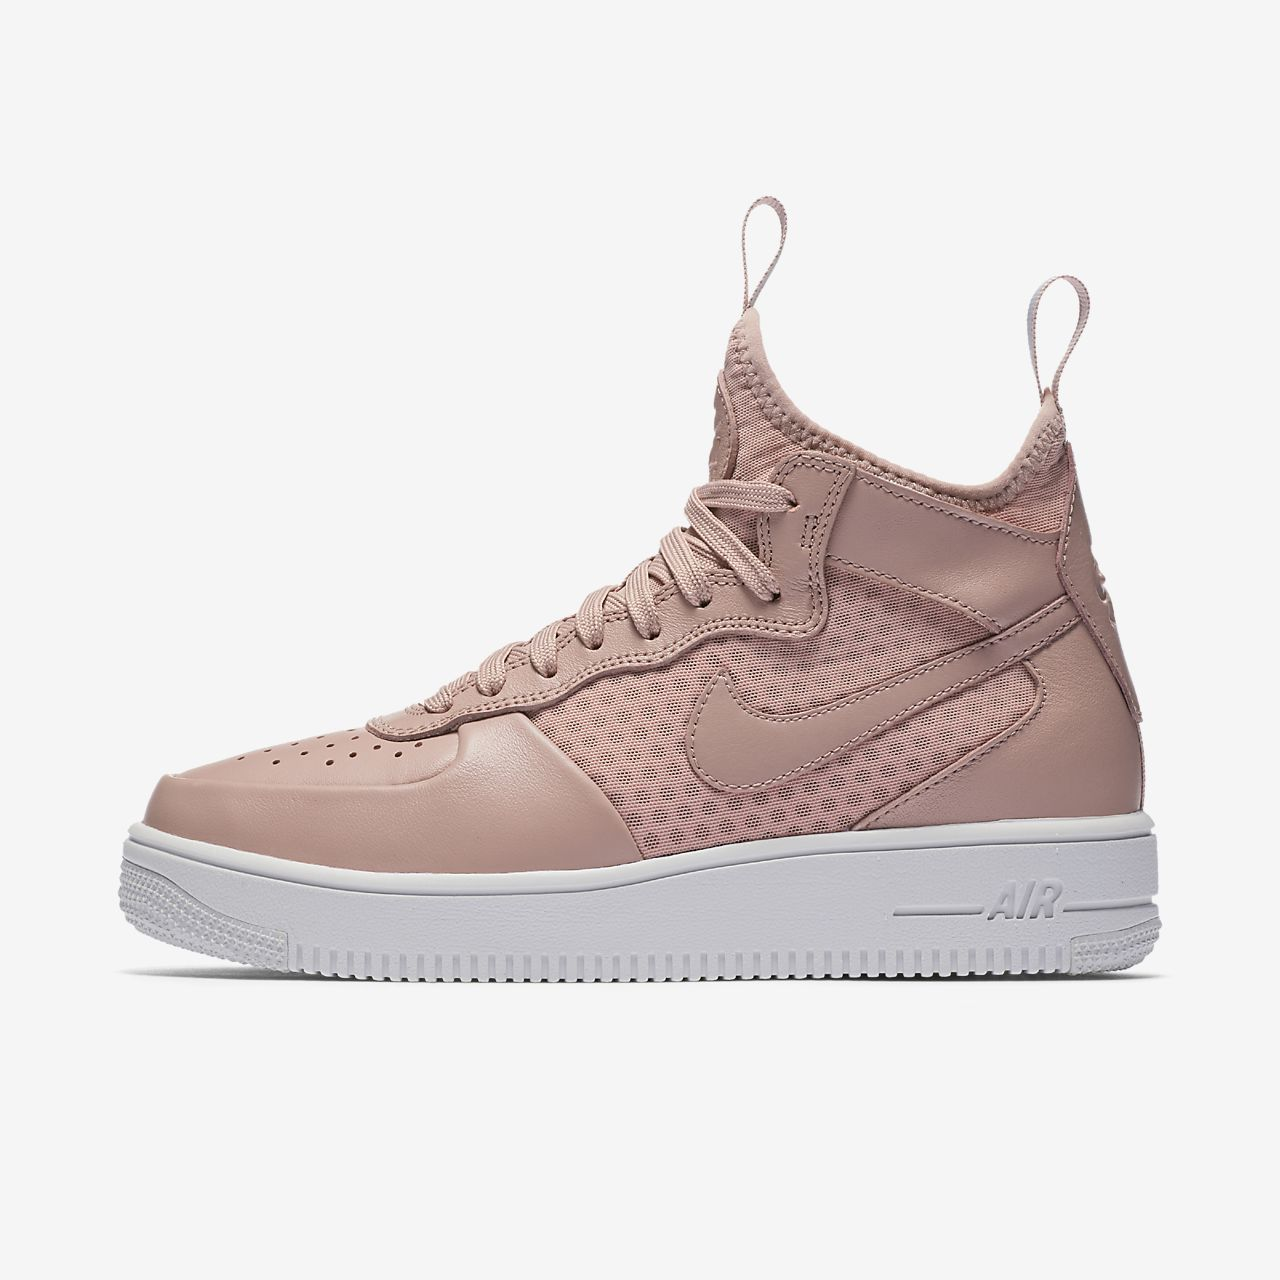 Nike Air Force 1 UltraForce Mid Women's Shoe